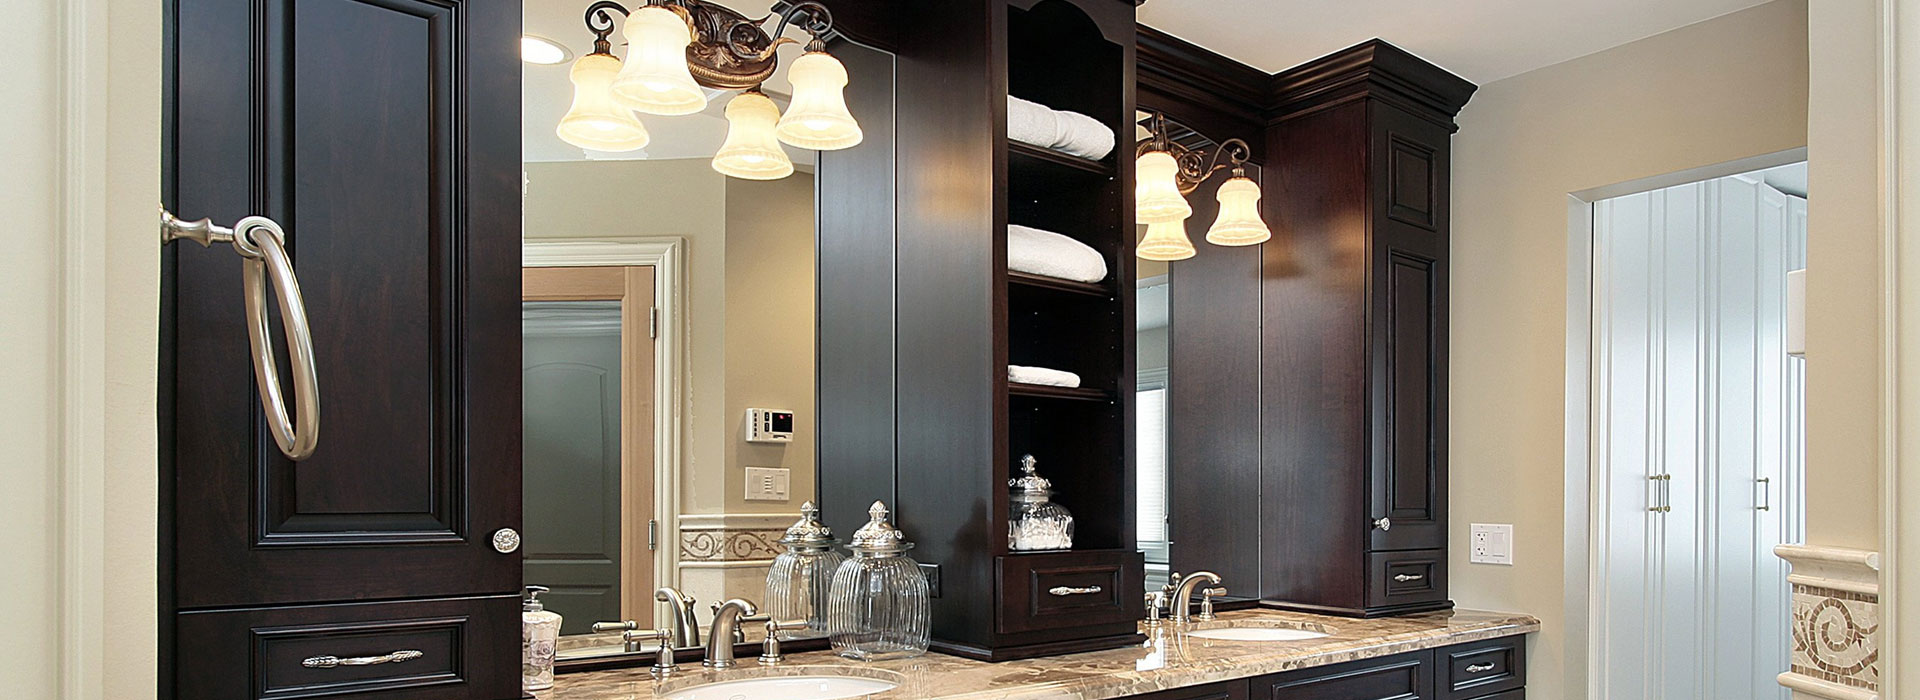 Vanities Doors Slider Image